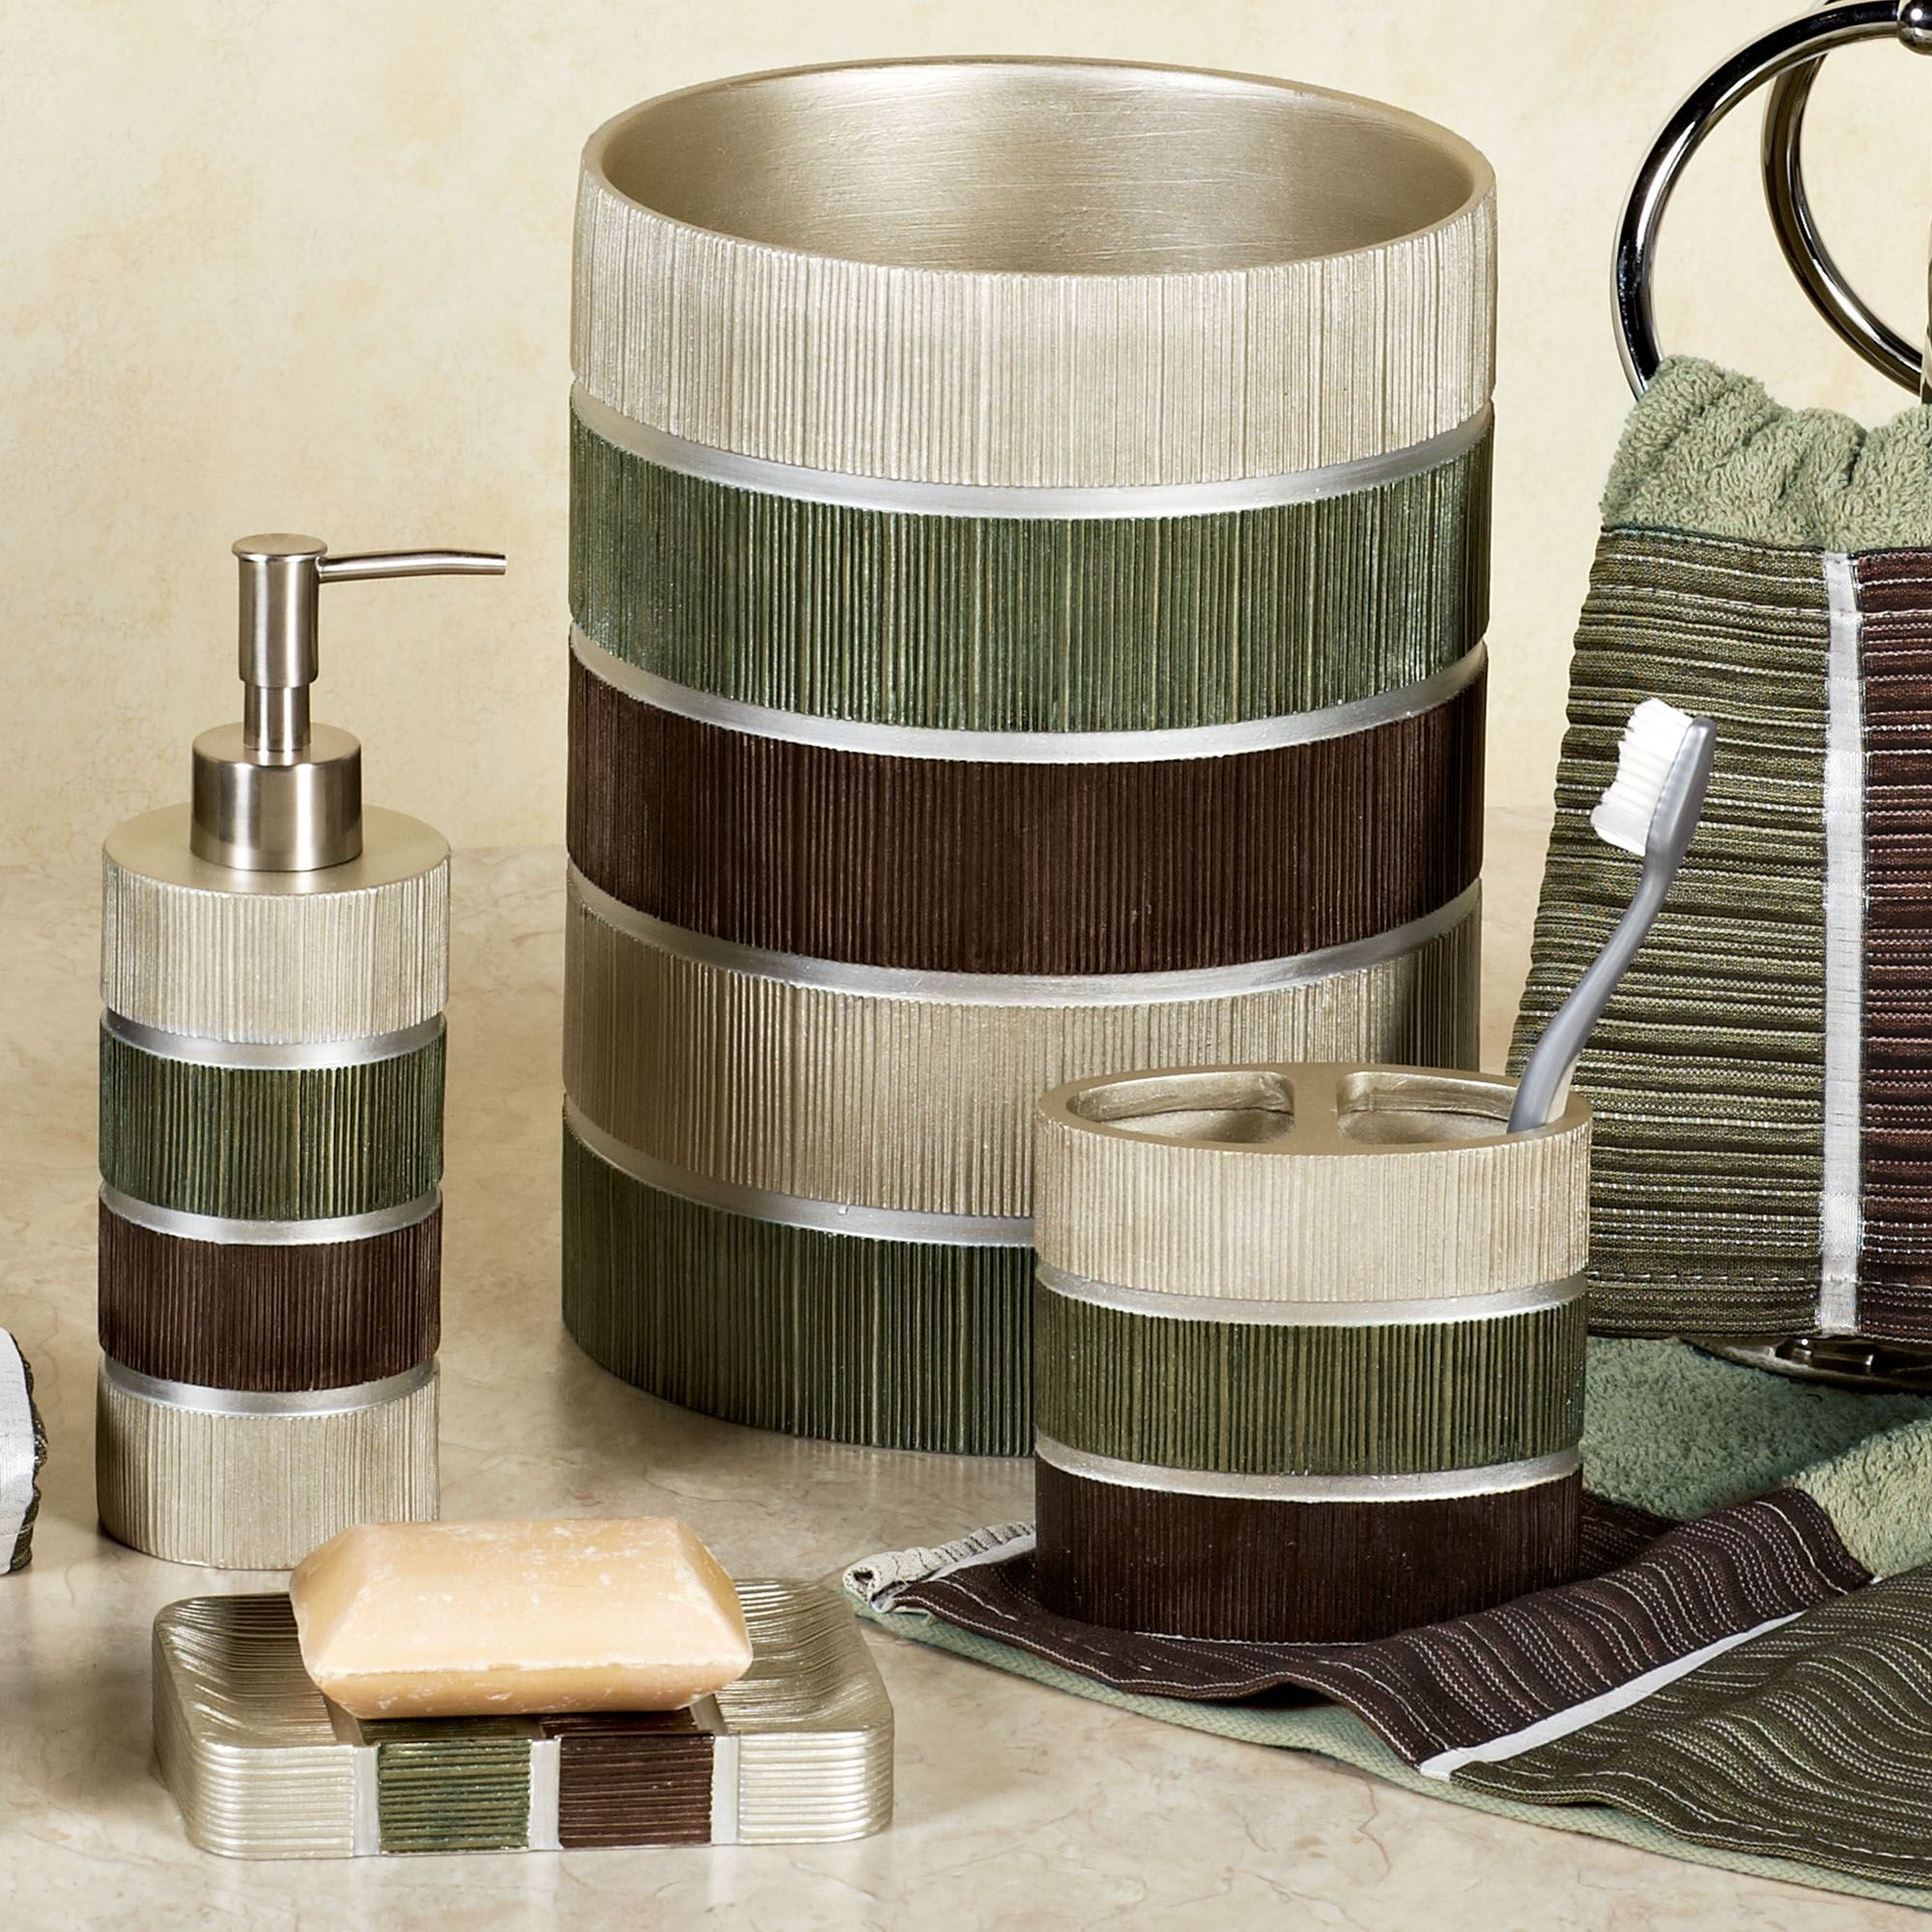 Modern Line Sage Striped Bath Accessories